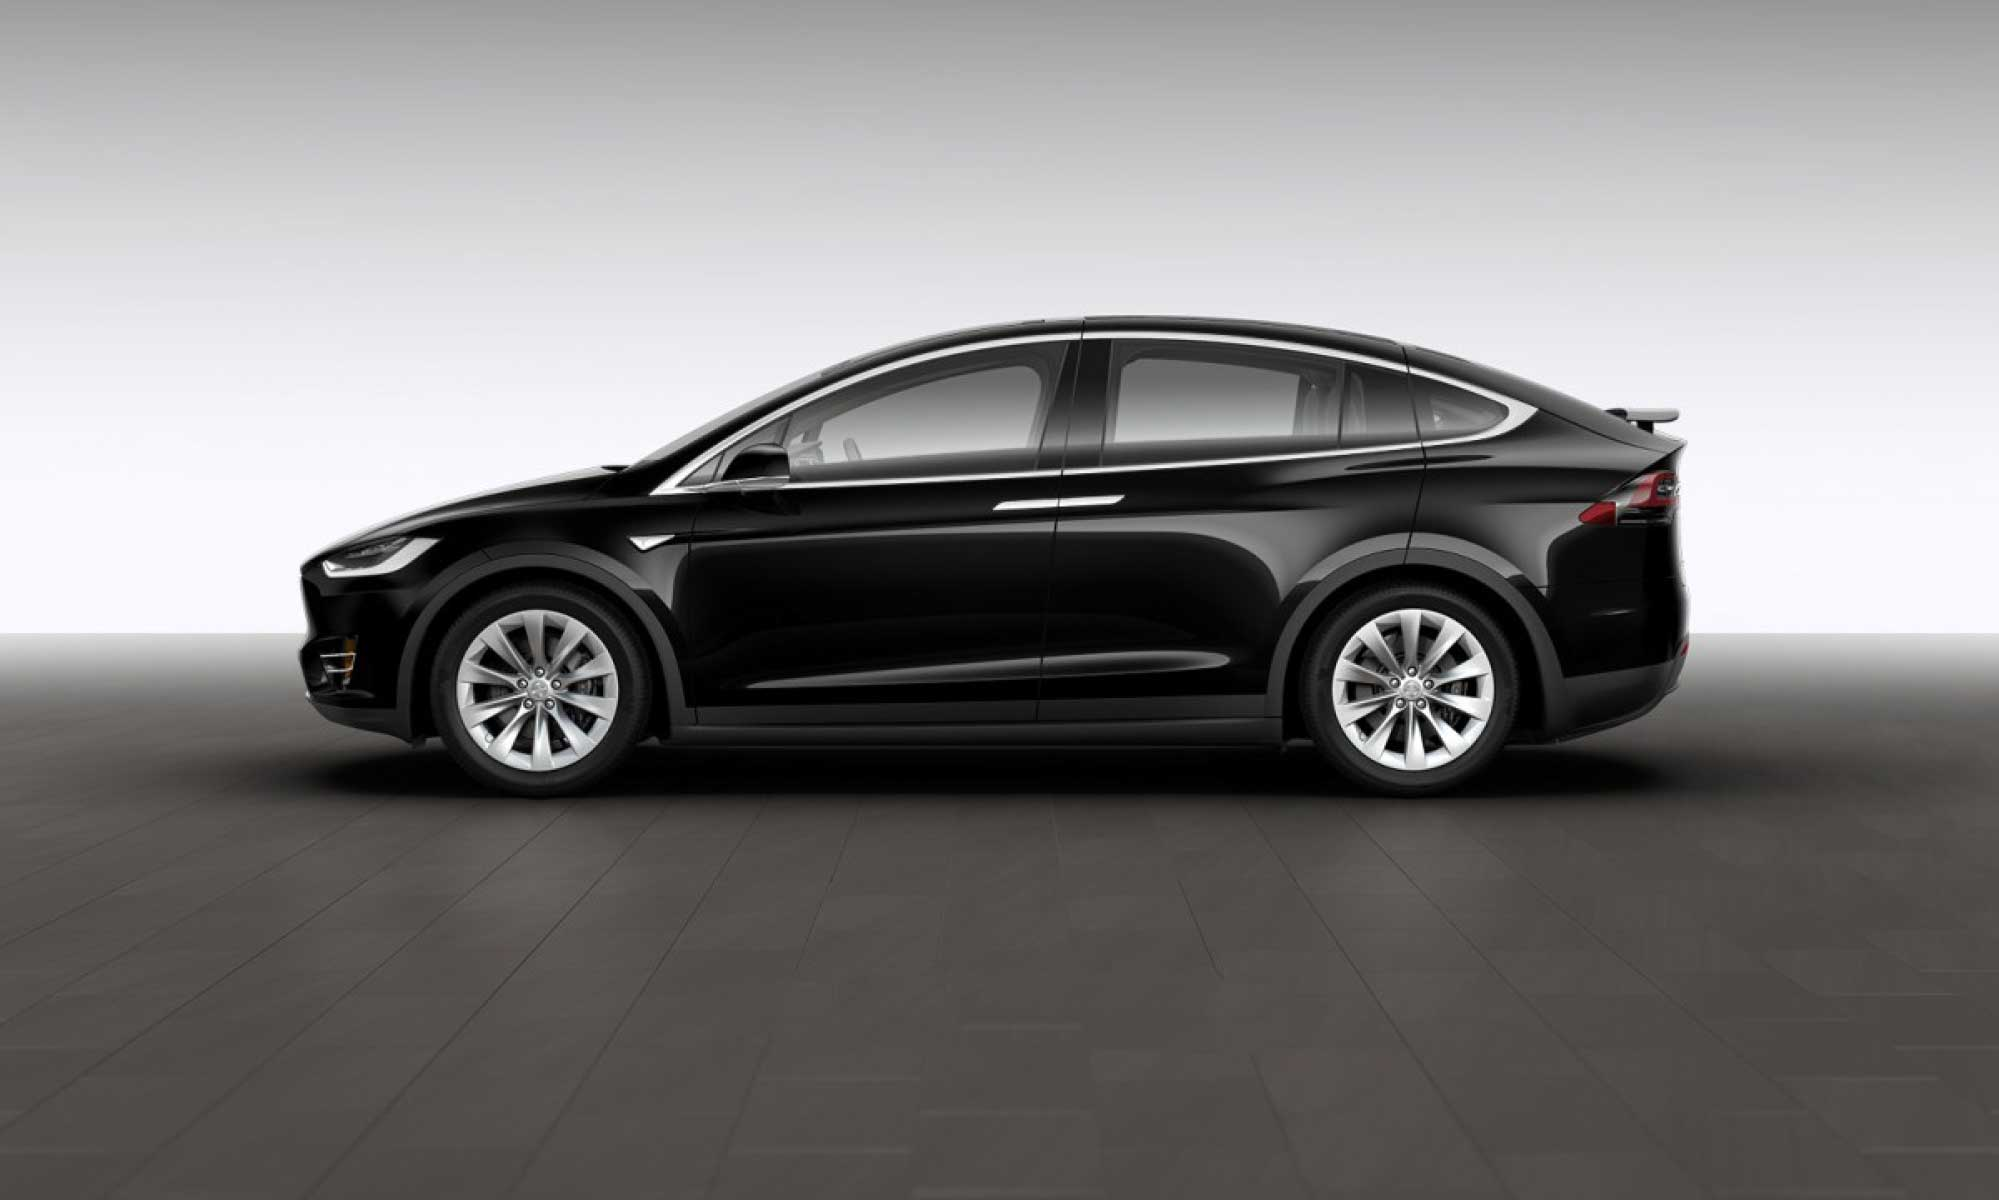 Rent a tesla – <br>Use it, don't own it!<br>Starting at 290 SFr.